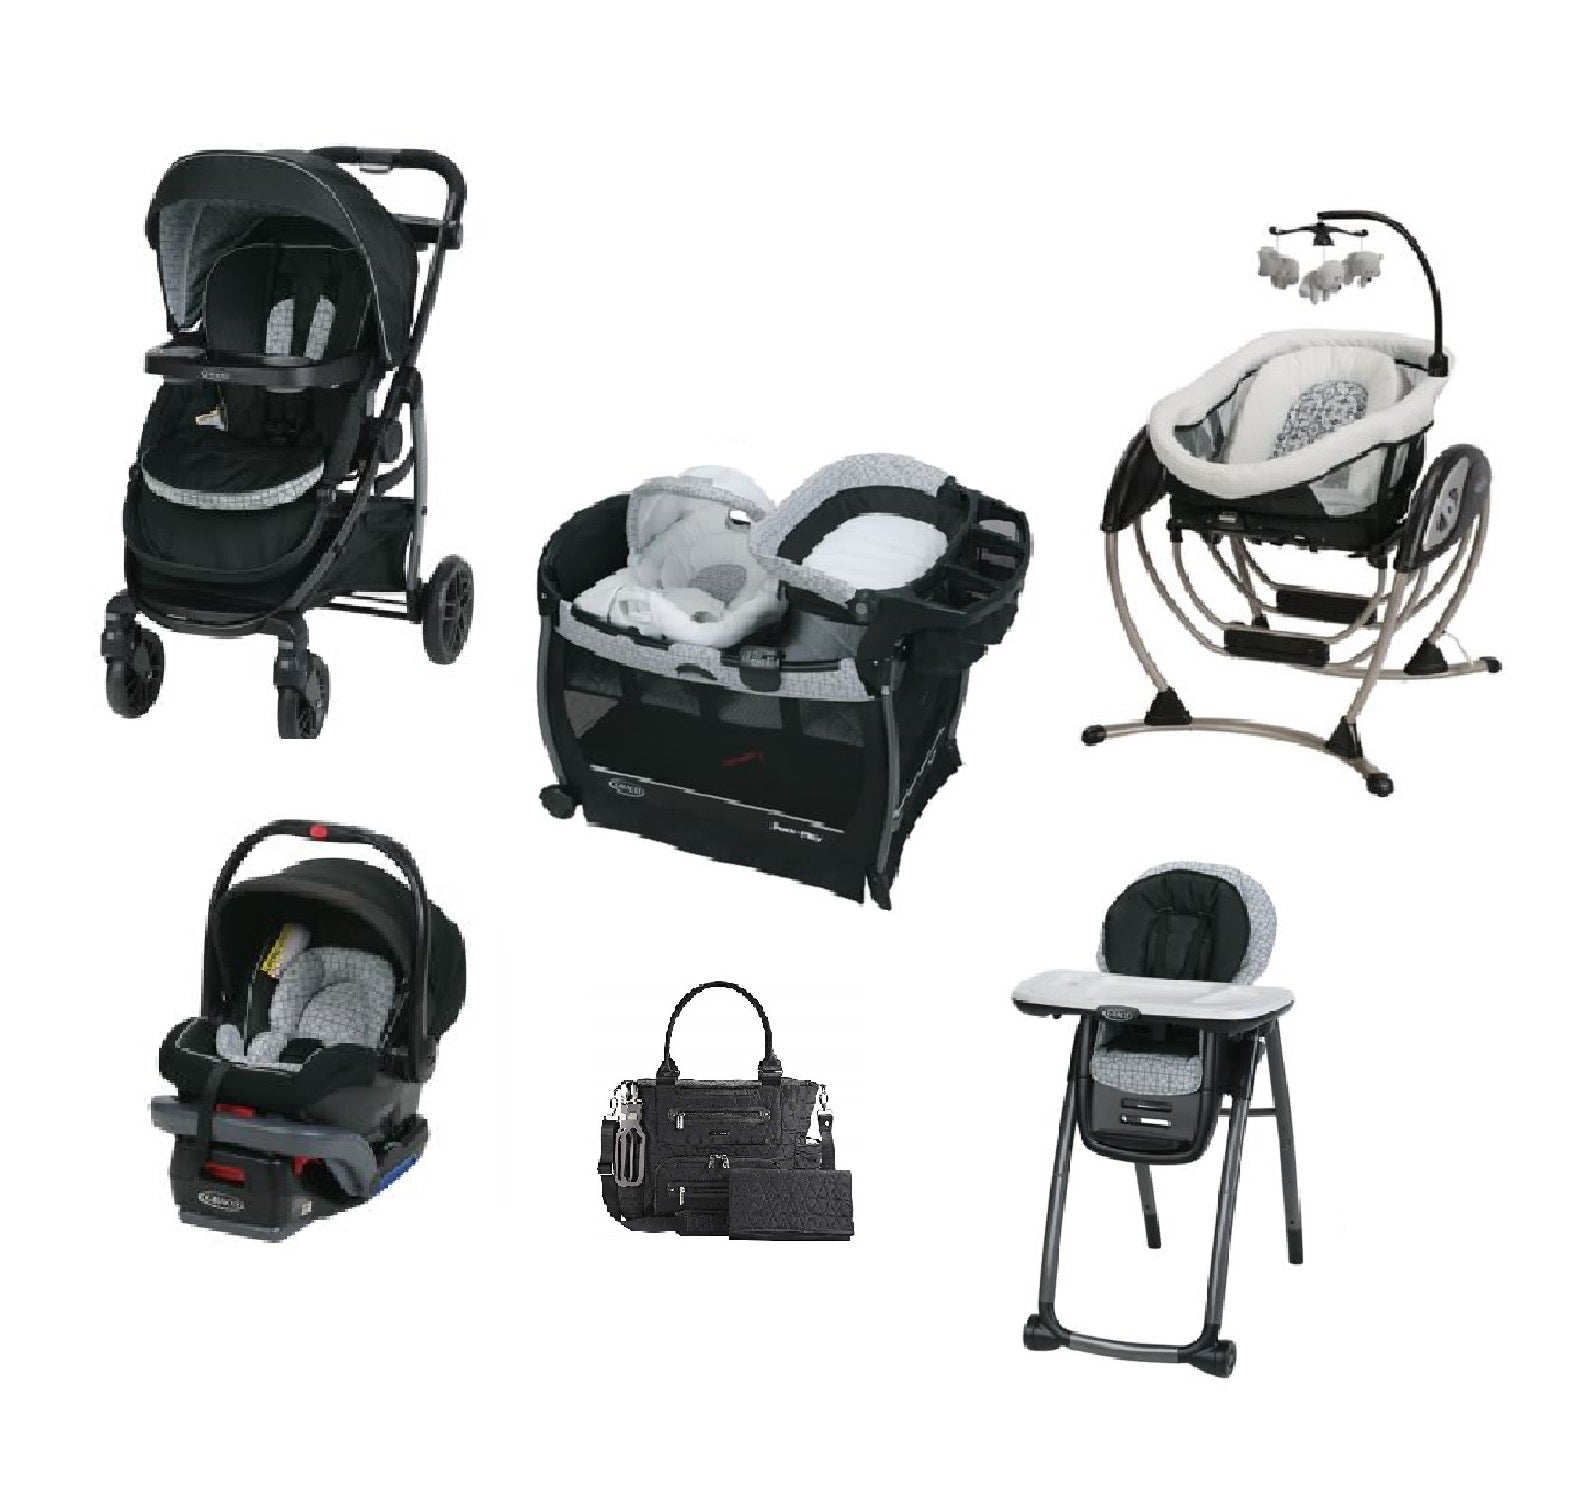 Graco Black Complete Baby Gear Bundle Stroller Travel System Play